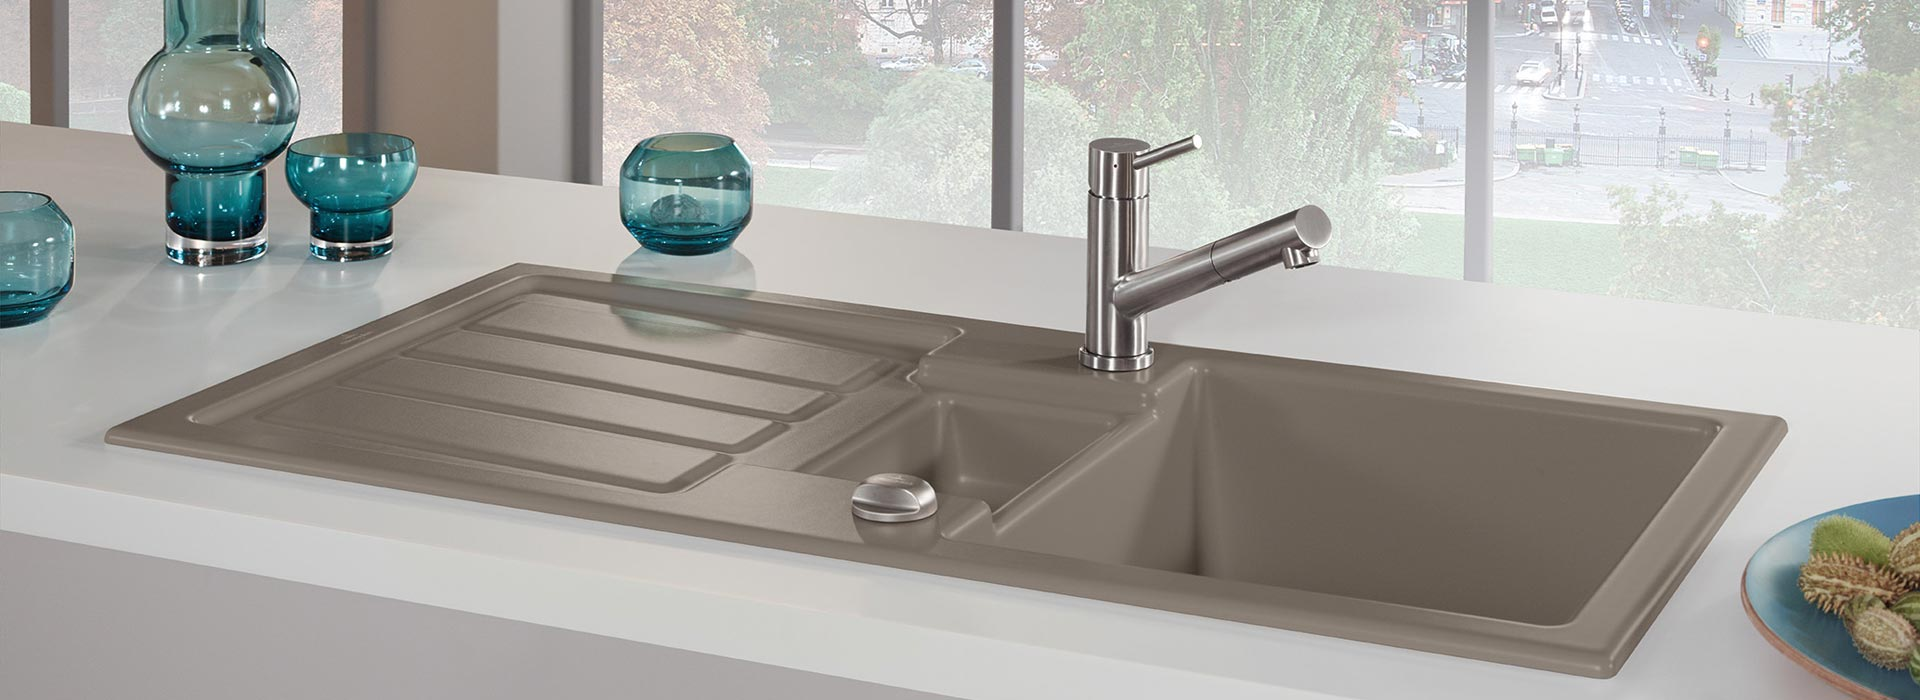 Villeroy boch kitchen sinks uk wow blog for Cucina wow